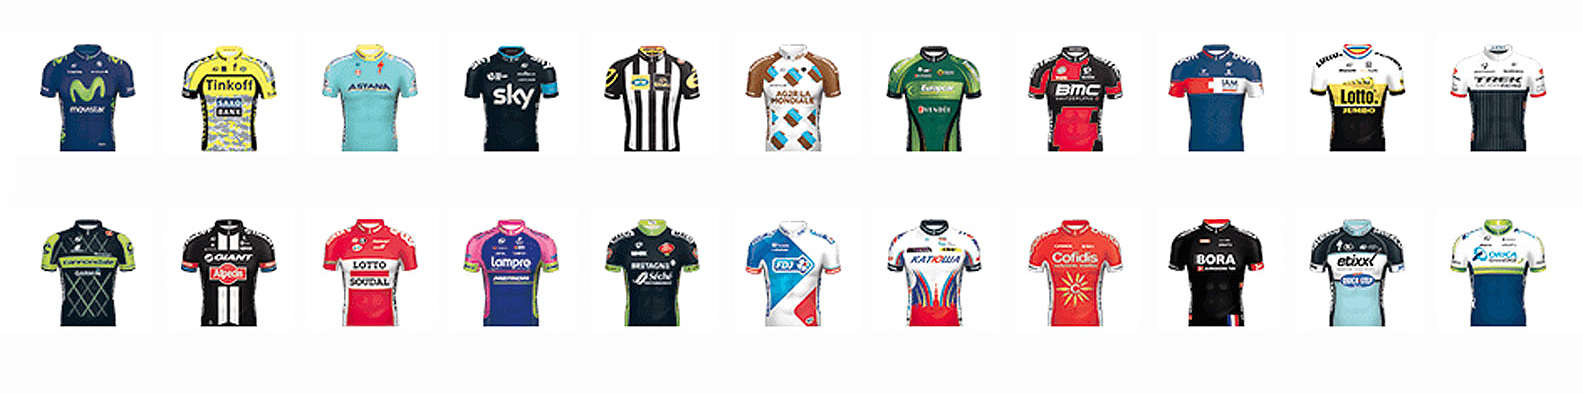 Le Tour de France IAM jerseys